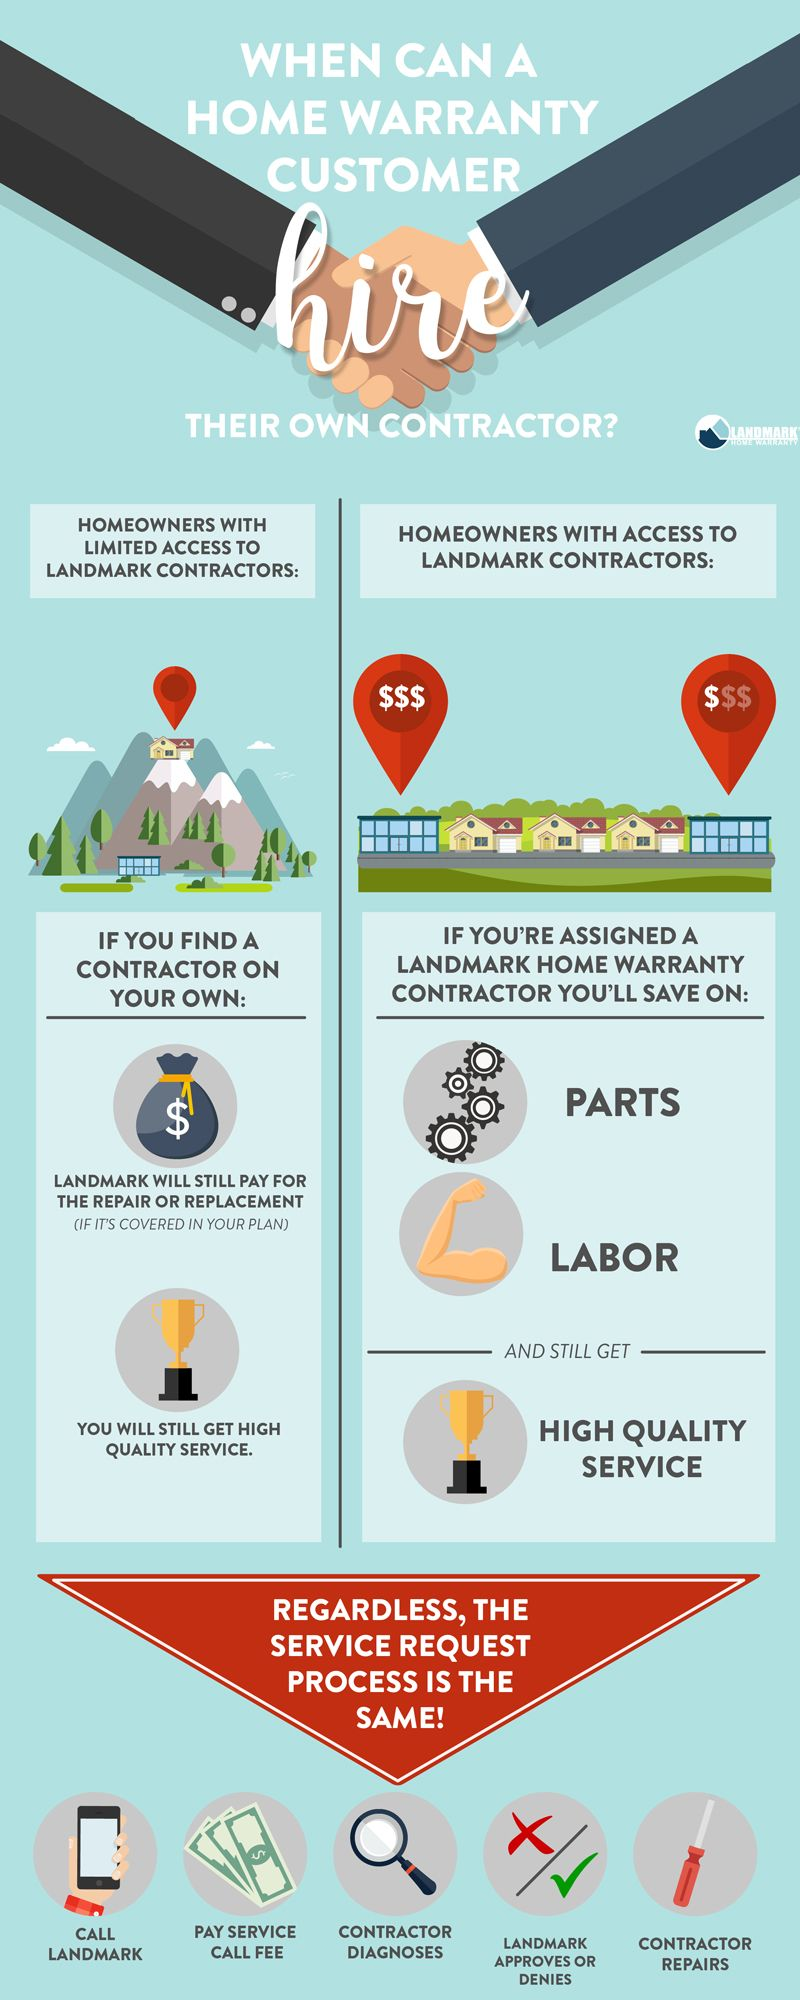 Infographic Explaining When A Home Warranty Contractor Can And Cannot Hire Their Own Contractor Home Warranty Contractors Warranty